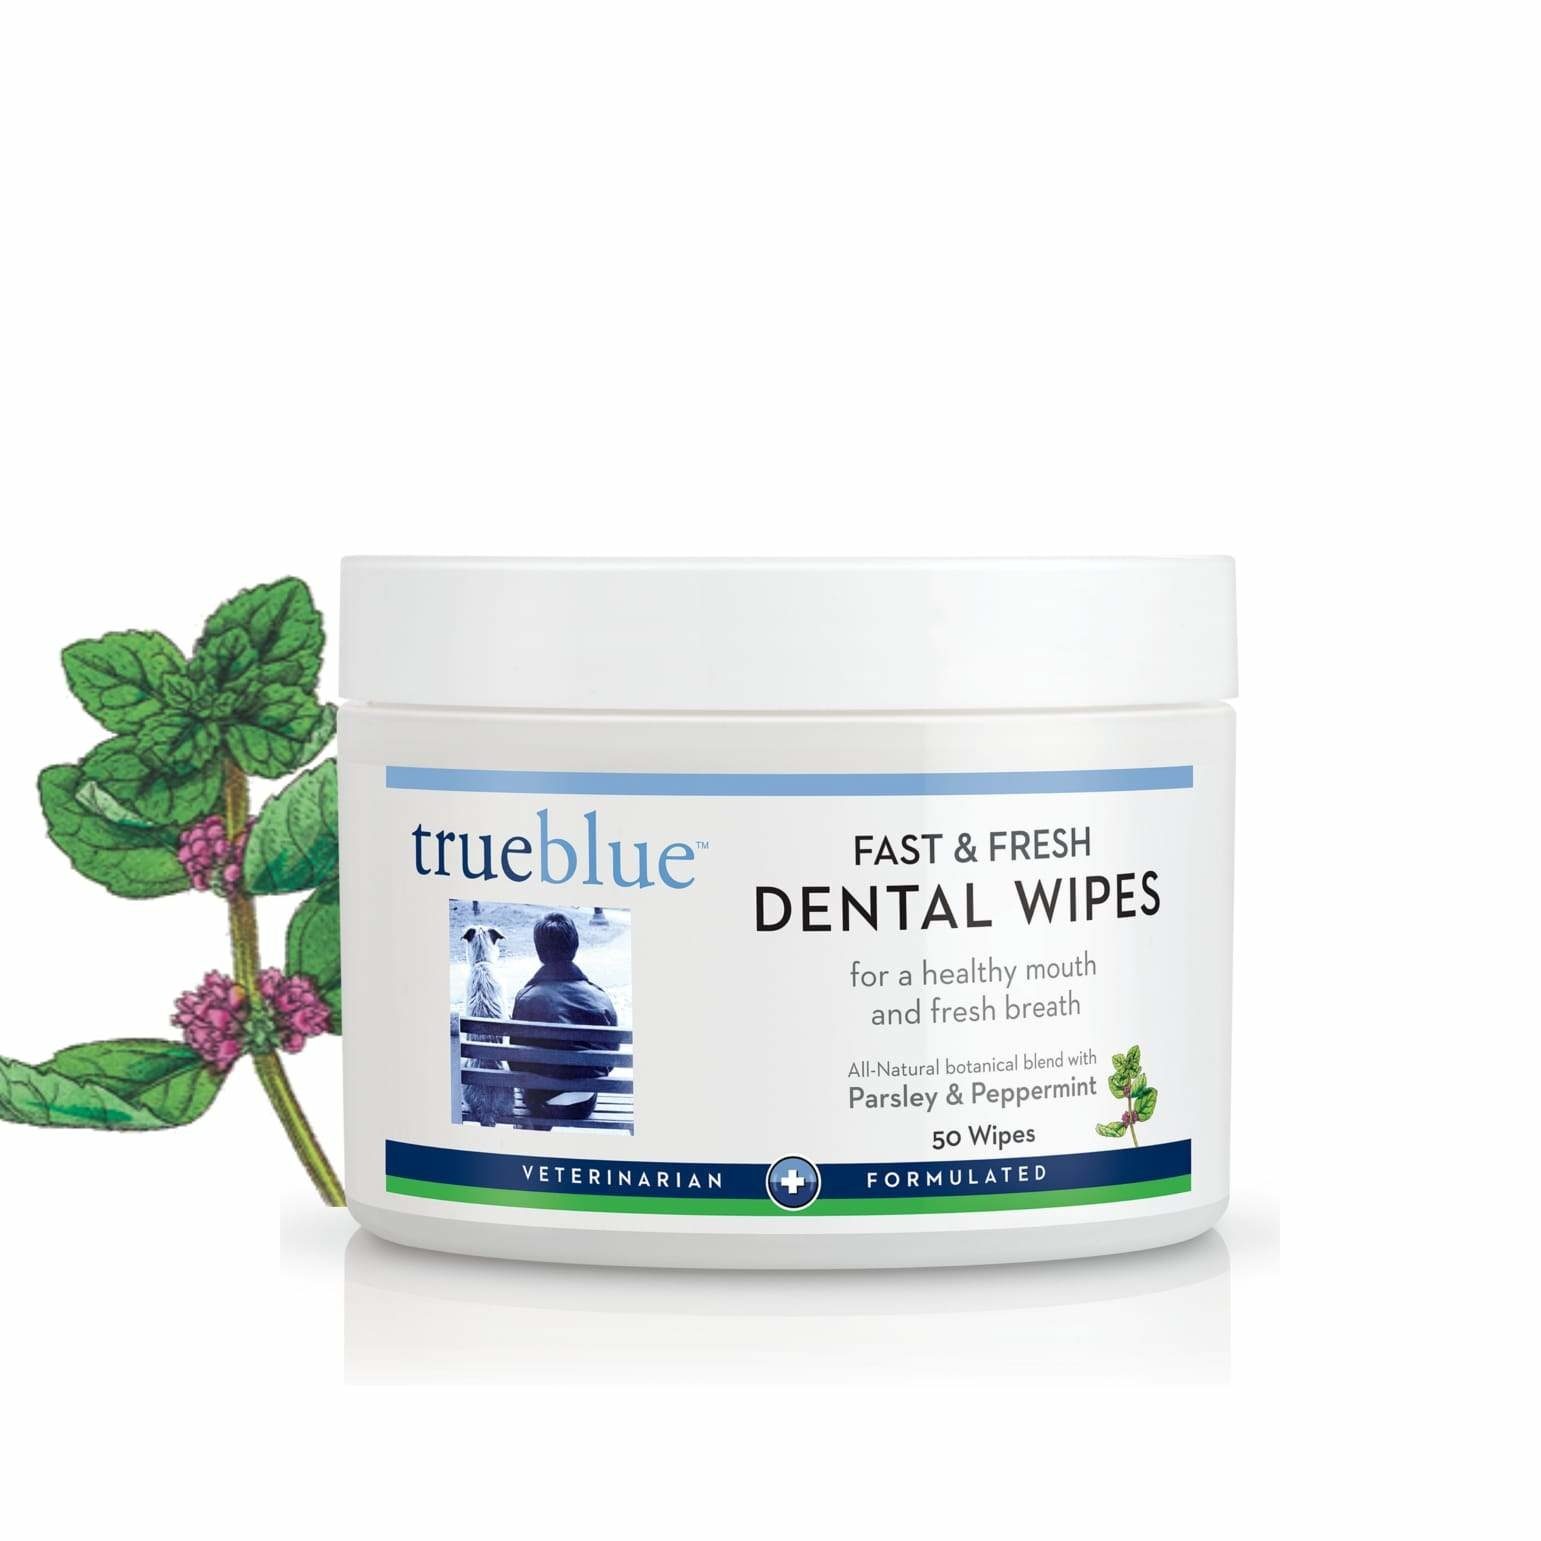 TrueBlue TrueBlue Dental Wipes